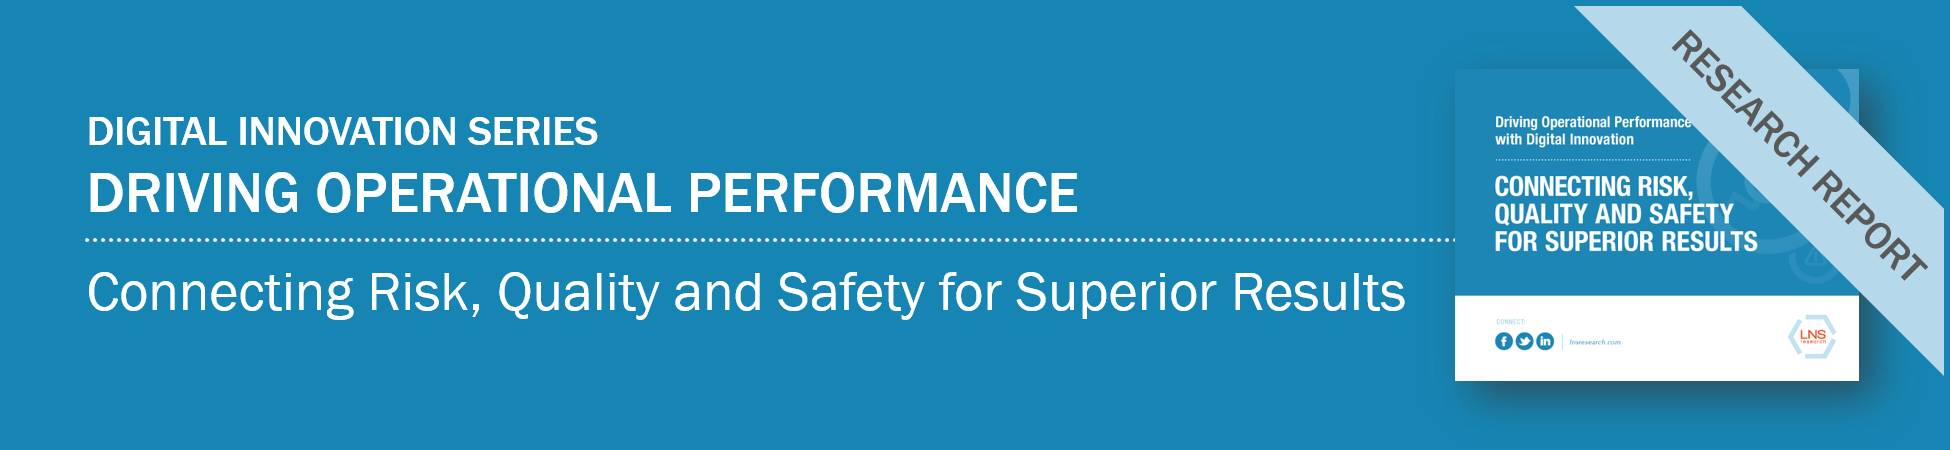 Ebook: Driving Operational Performance: Connecting Risk, Quality and Safety for Superior Results